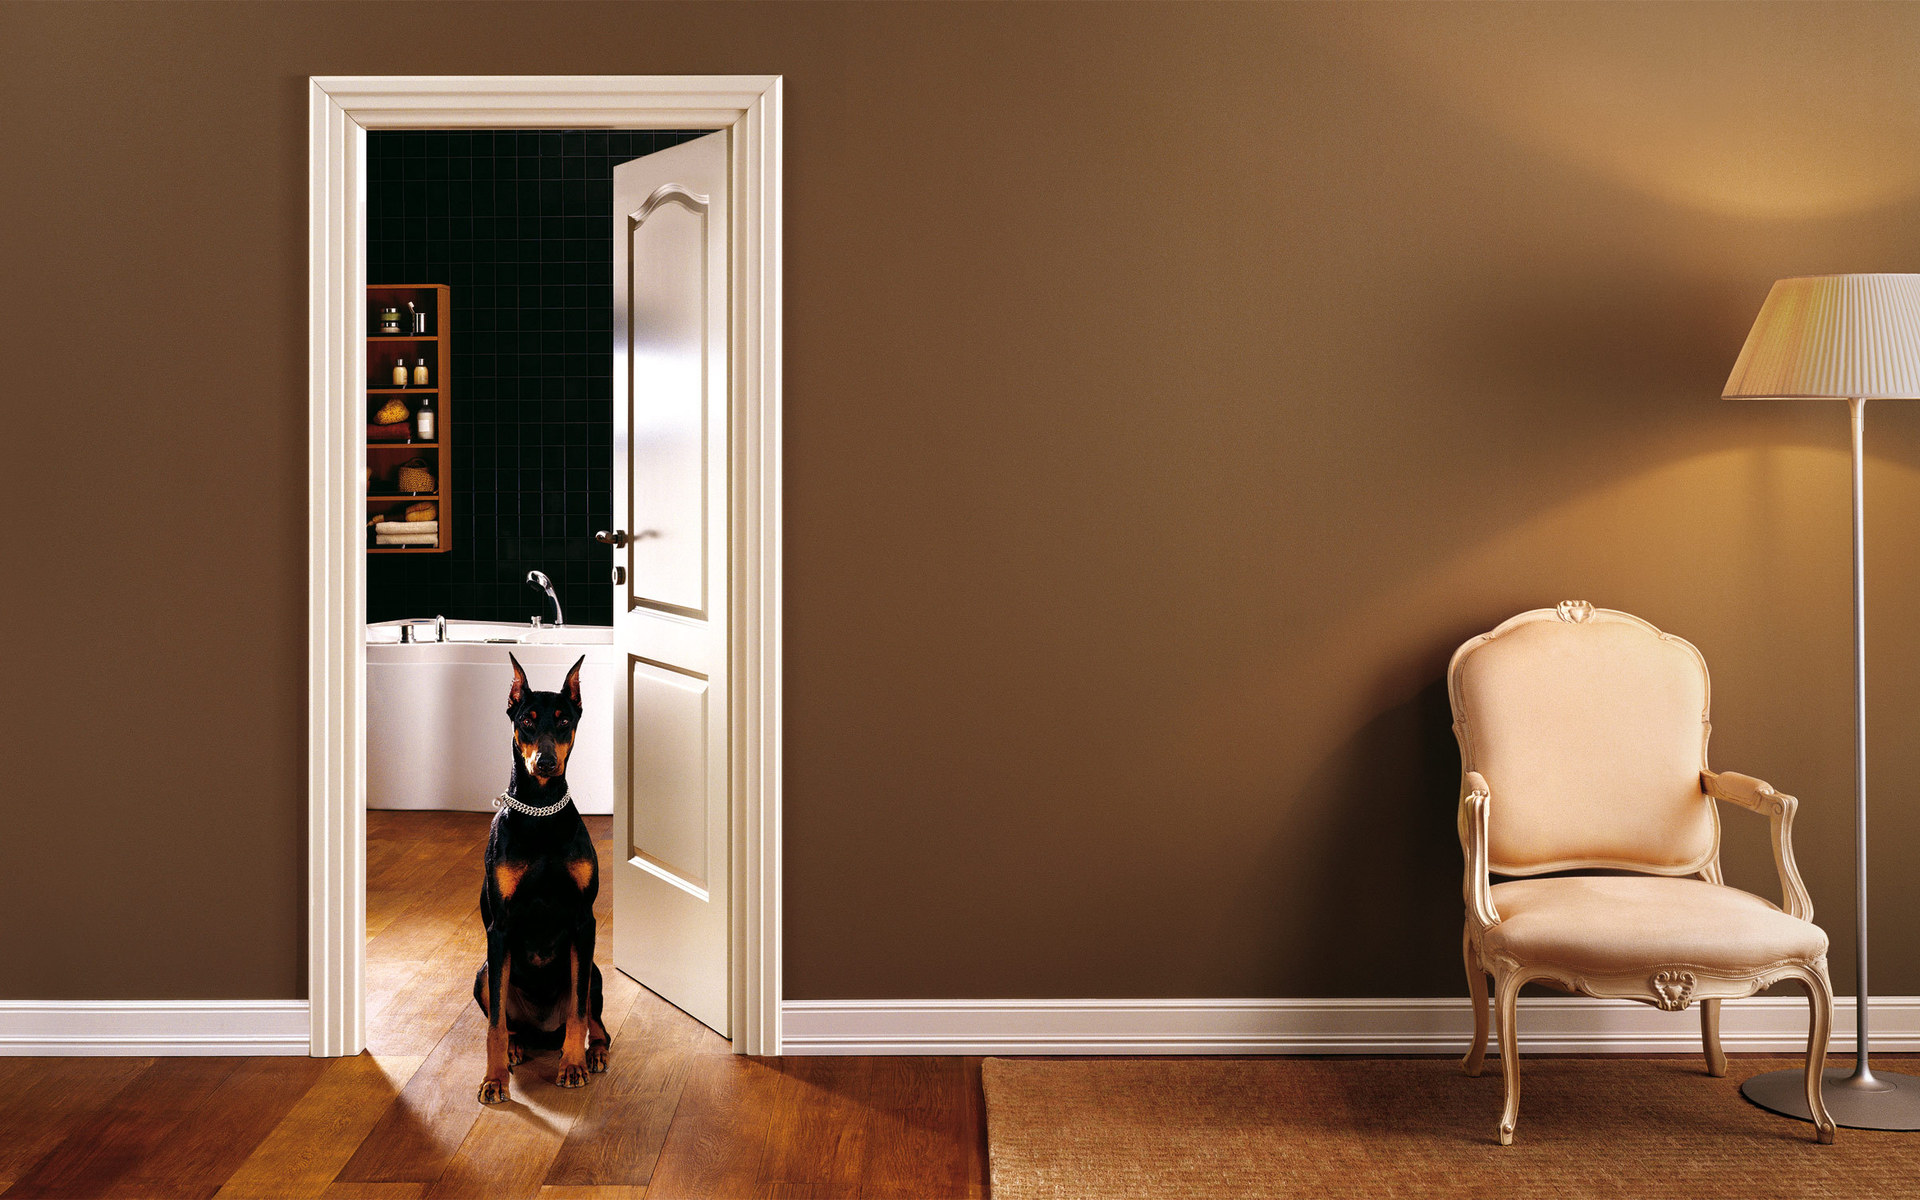 Interior Room Chair And Dog  Interior Room Chair And Dog Wallpapers  1920x1200 481823. Interior Of Room